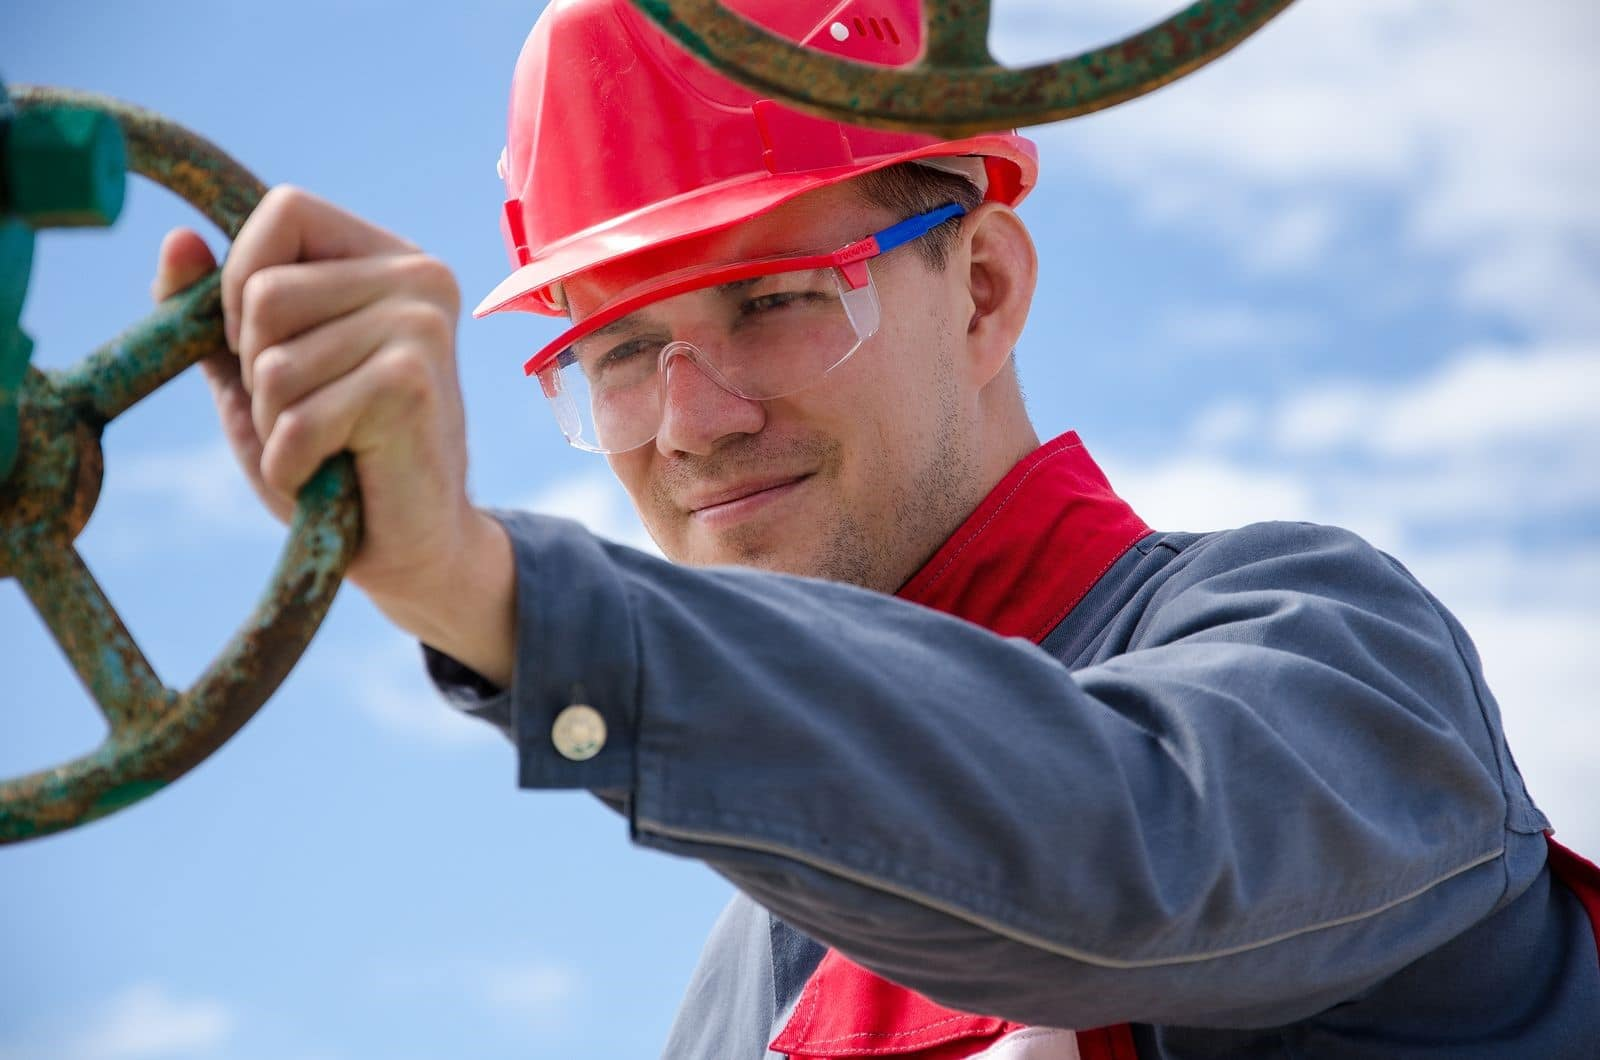 Impact of OSHA Regulations in Reducing Oilfield Injuries in Oklahoma